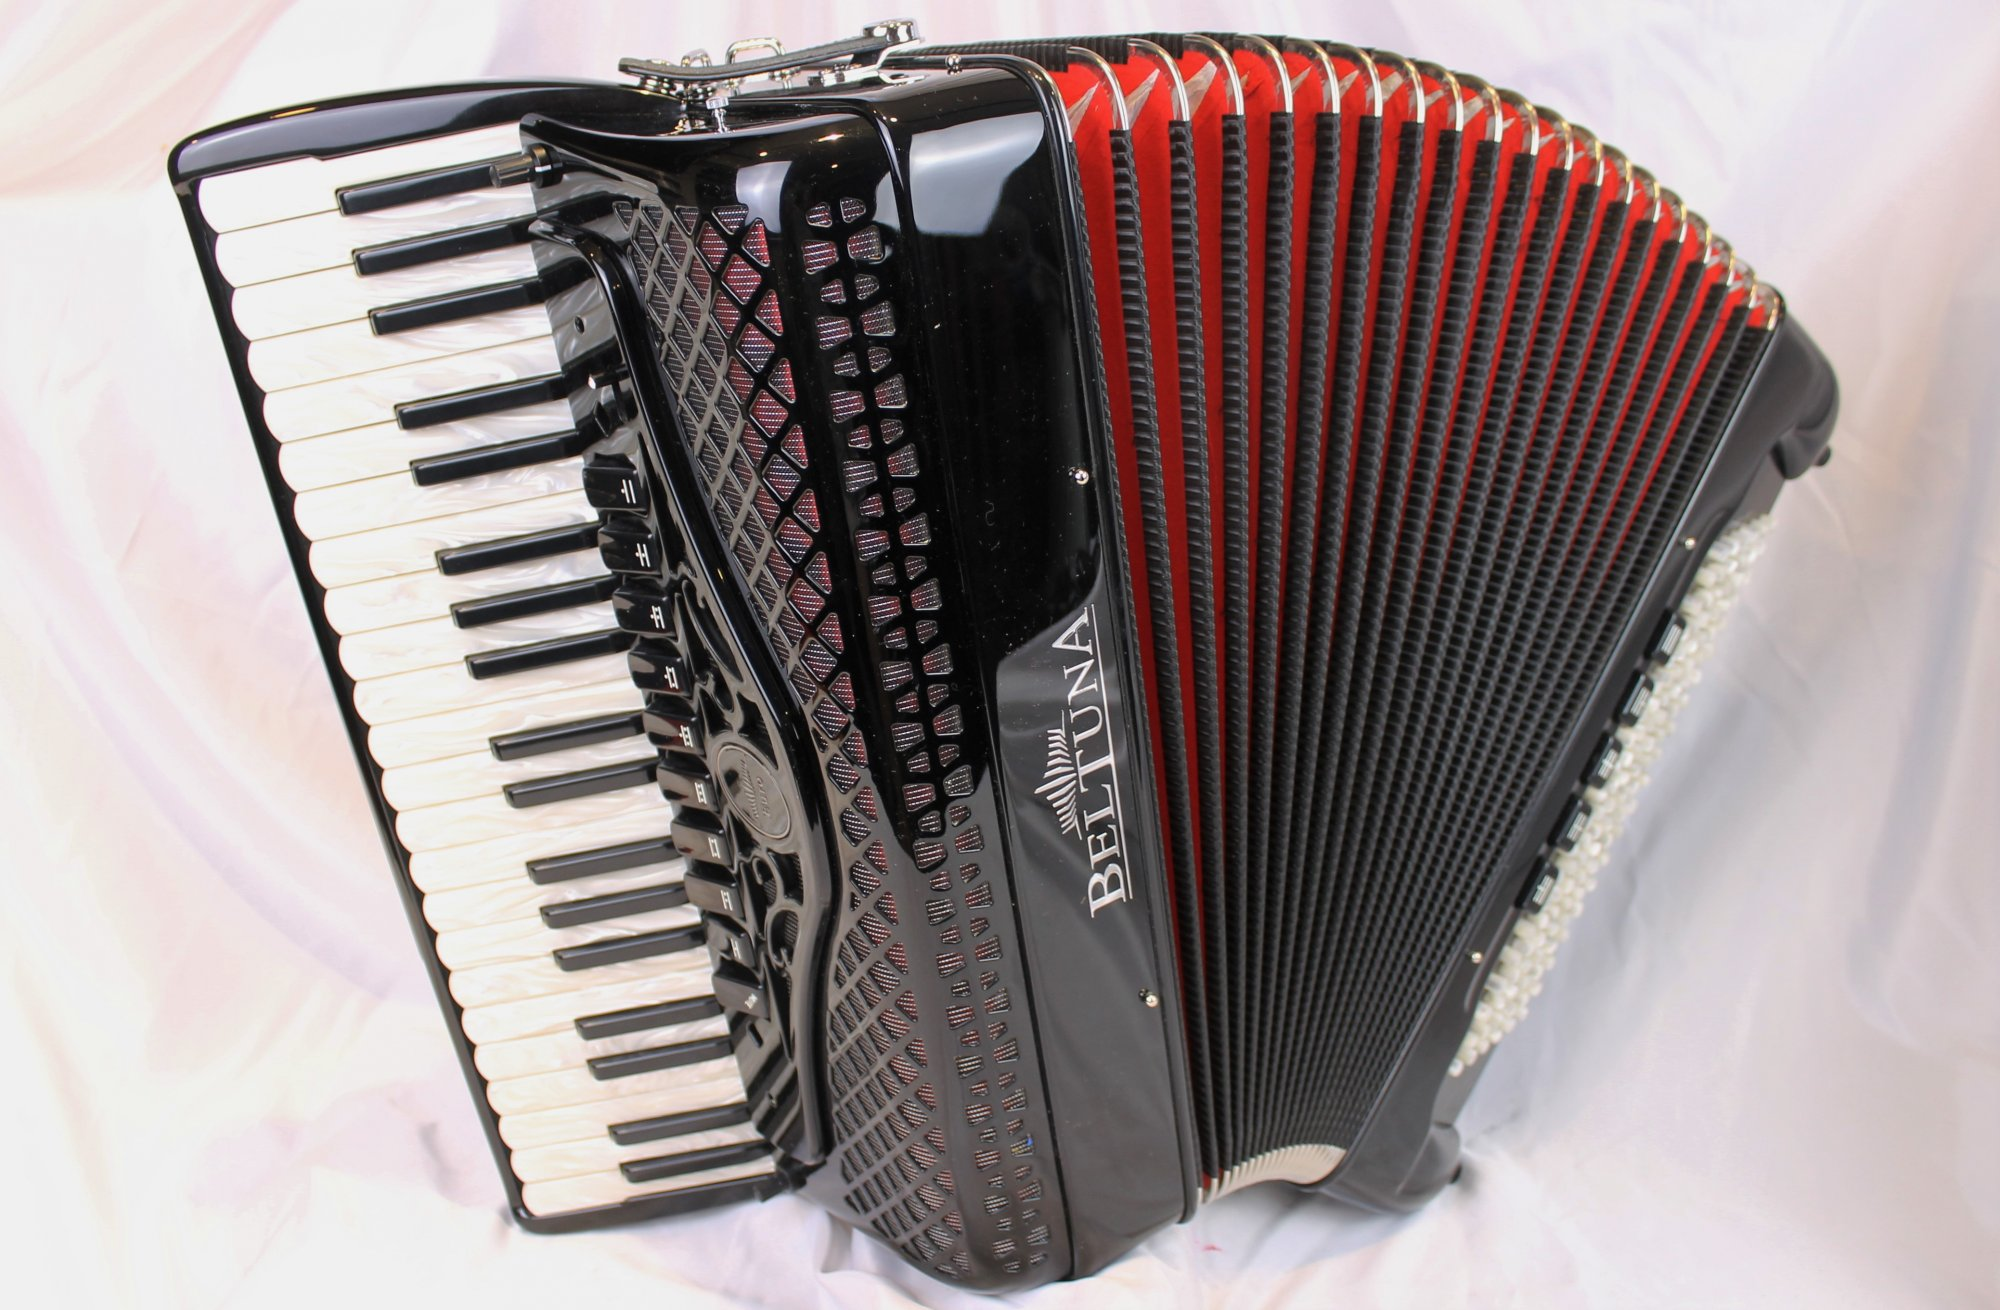 NEW Black Beltuna Euro IV Special Piano Accordion LMMM 41 120